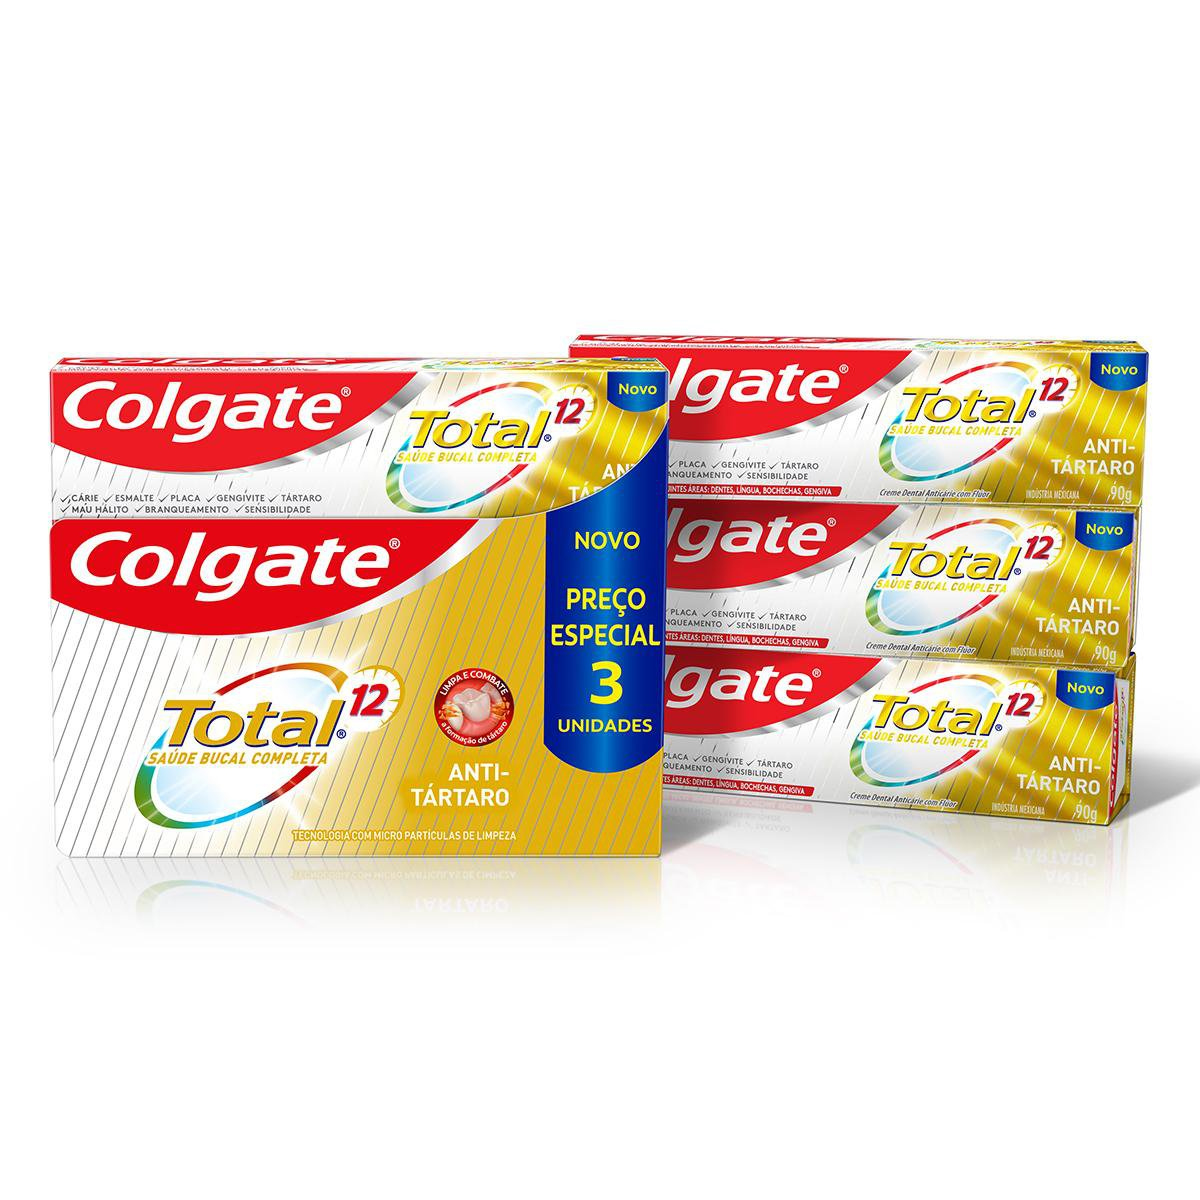 CR DENT COLG TO12 PACK ANTITARTA 90G(16)